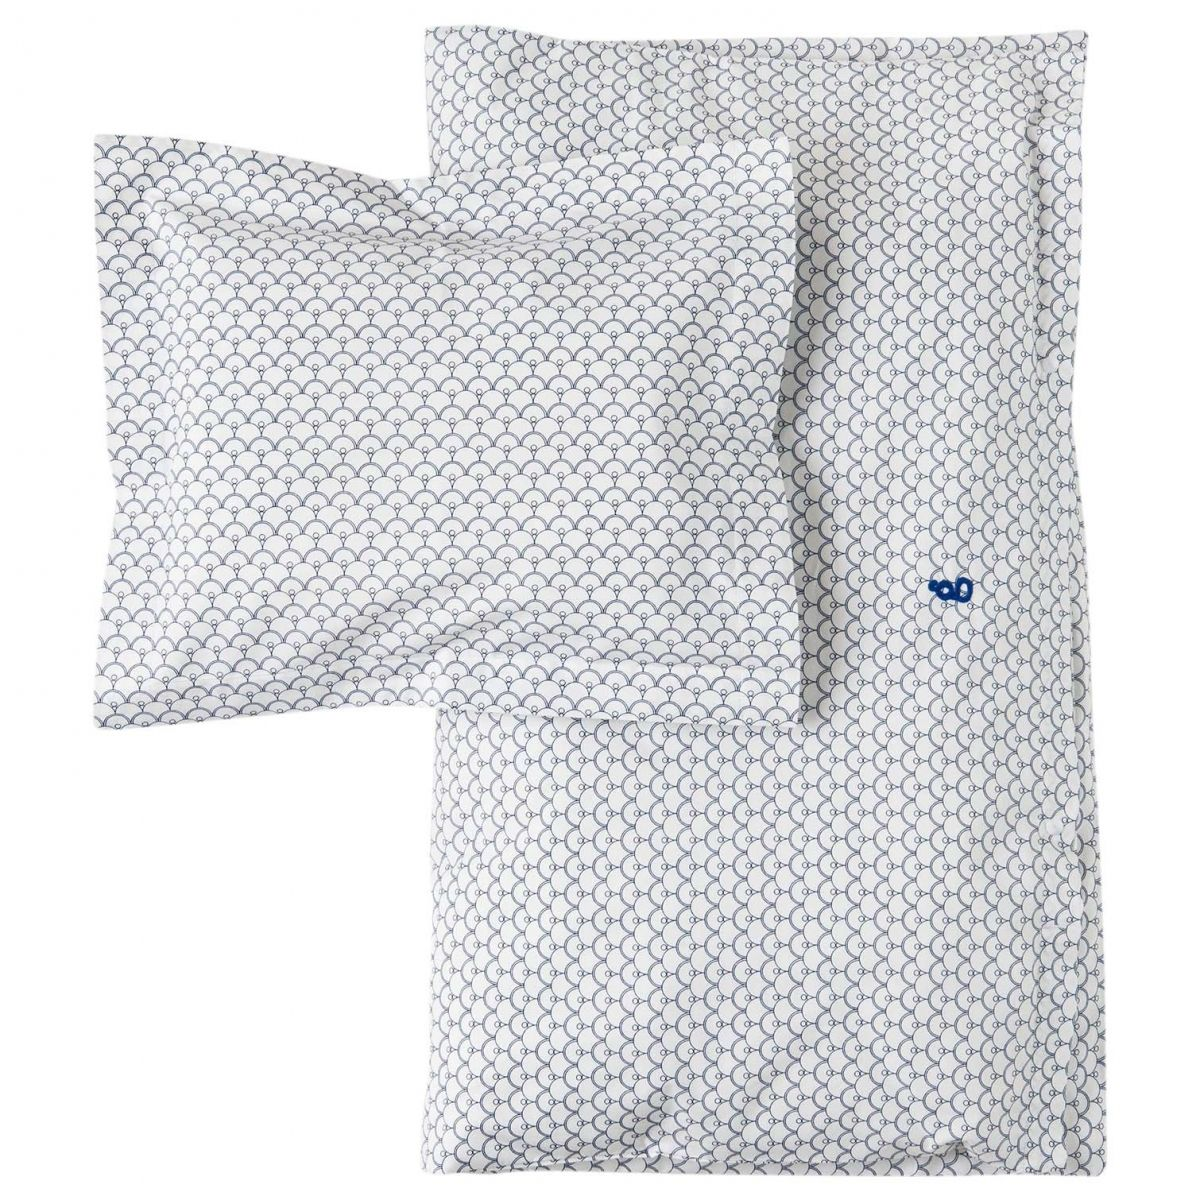 Garbo & Friends - Cupola Blue Baby Bedset BS SE white - 1